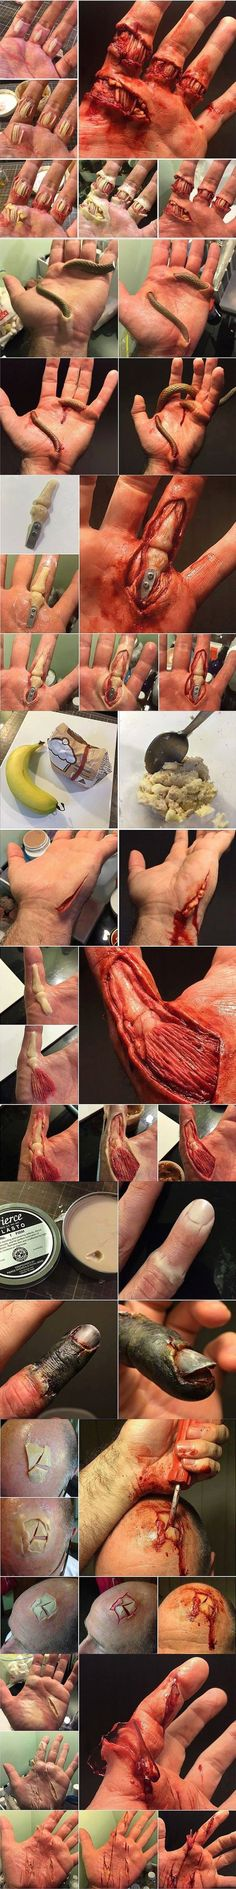 Halloween / SFX makeup that could be handy for some freaky cosplays Makeup Fx, Zombie Makeup, Scary Makeup, Cosplay Makeup, Costume Makeup, Hand Makeup, Awesome Makeup, Makeup Tricks, Halloween Kostüm